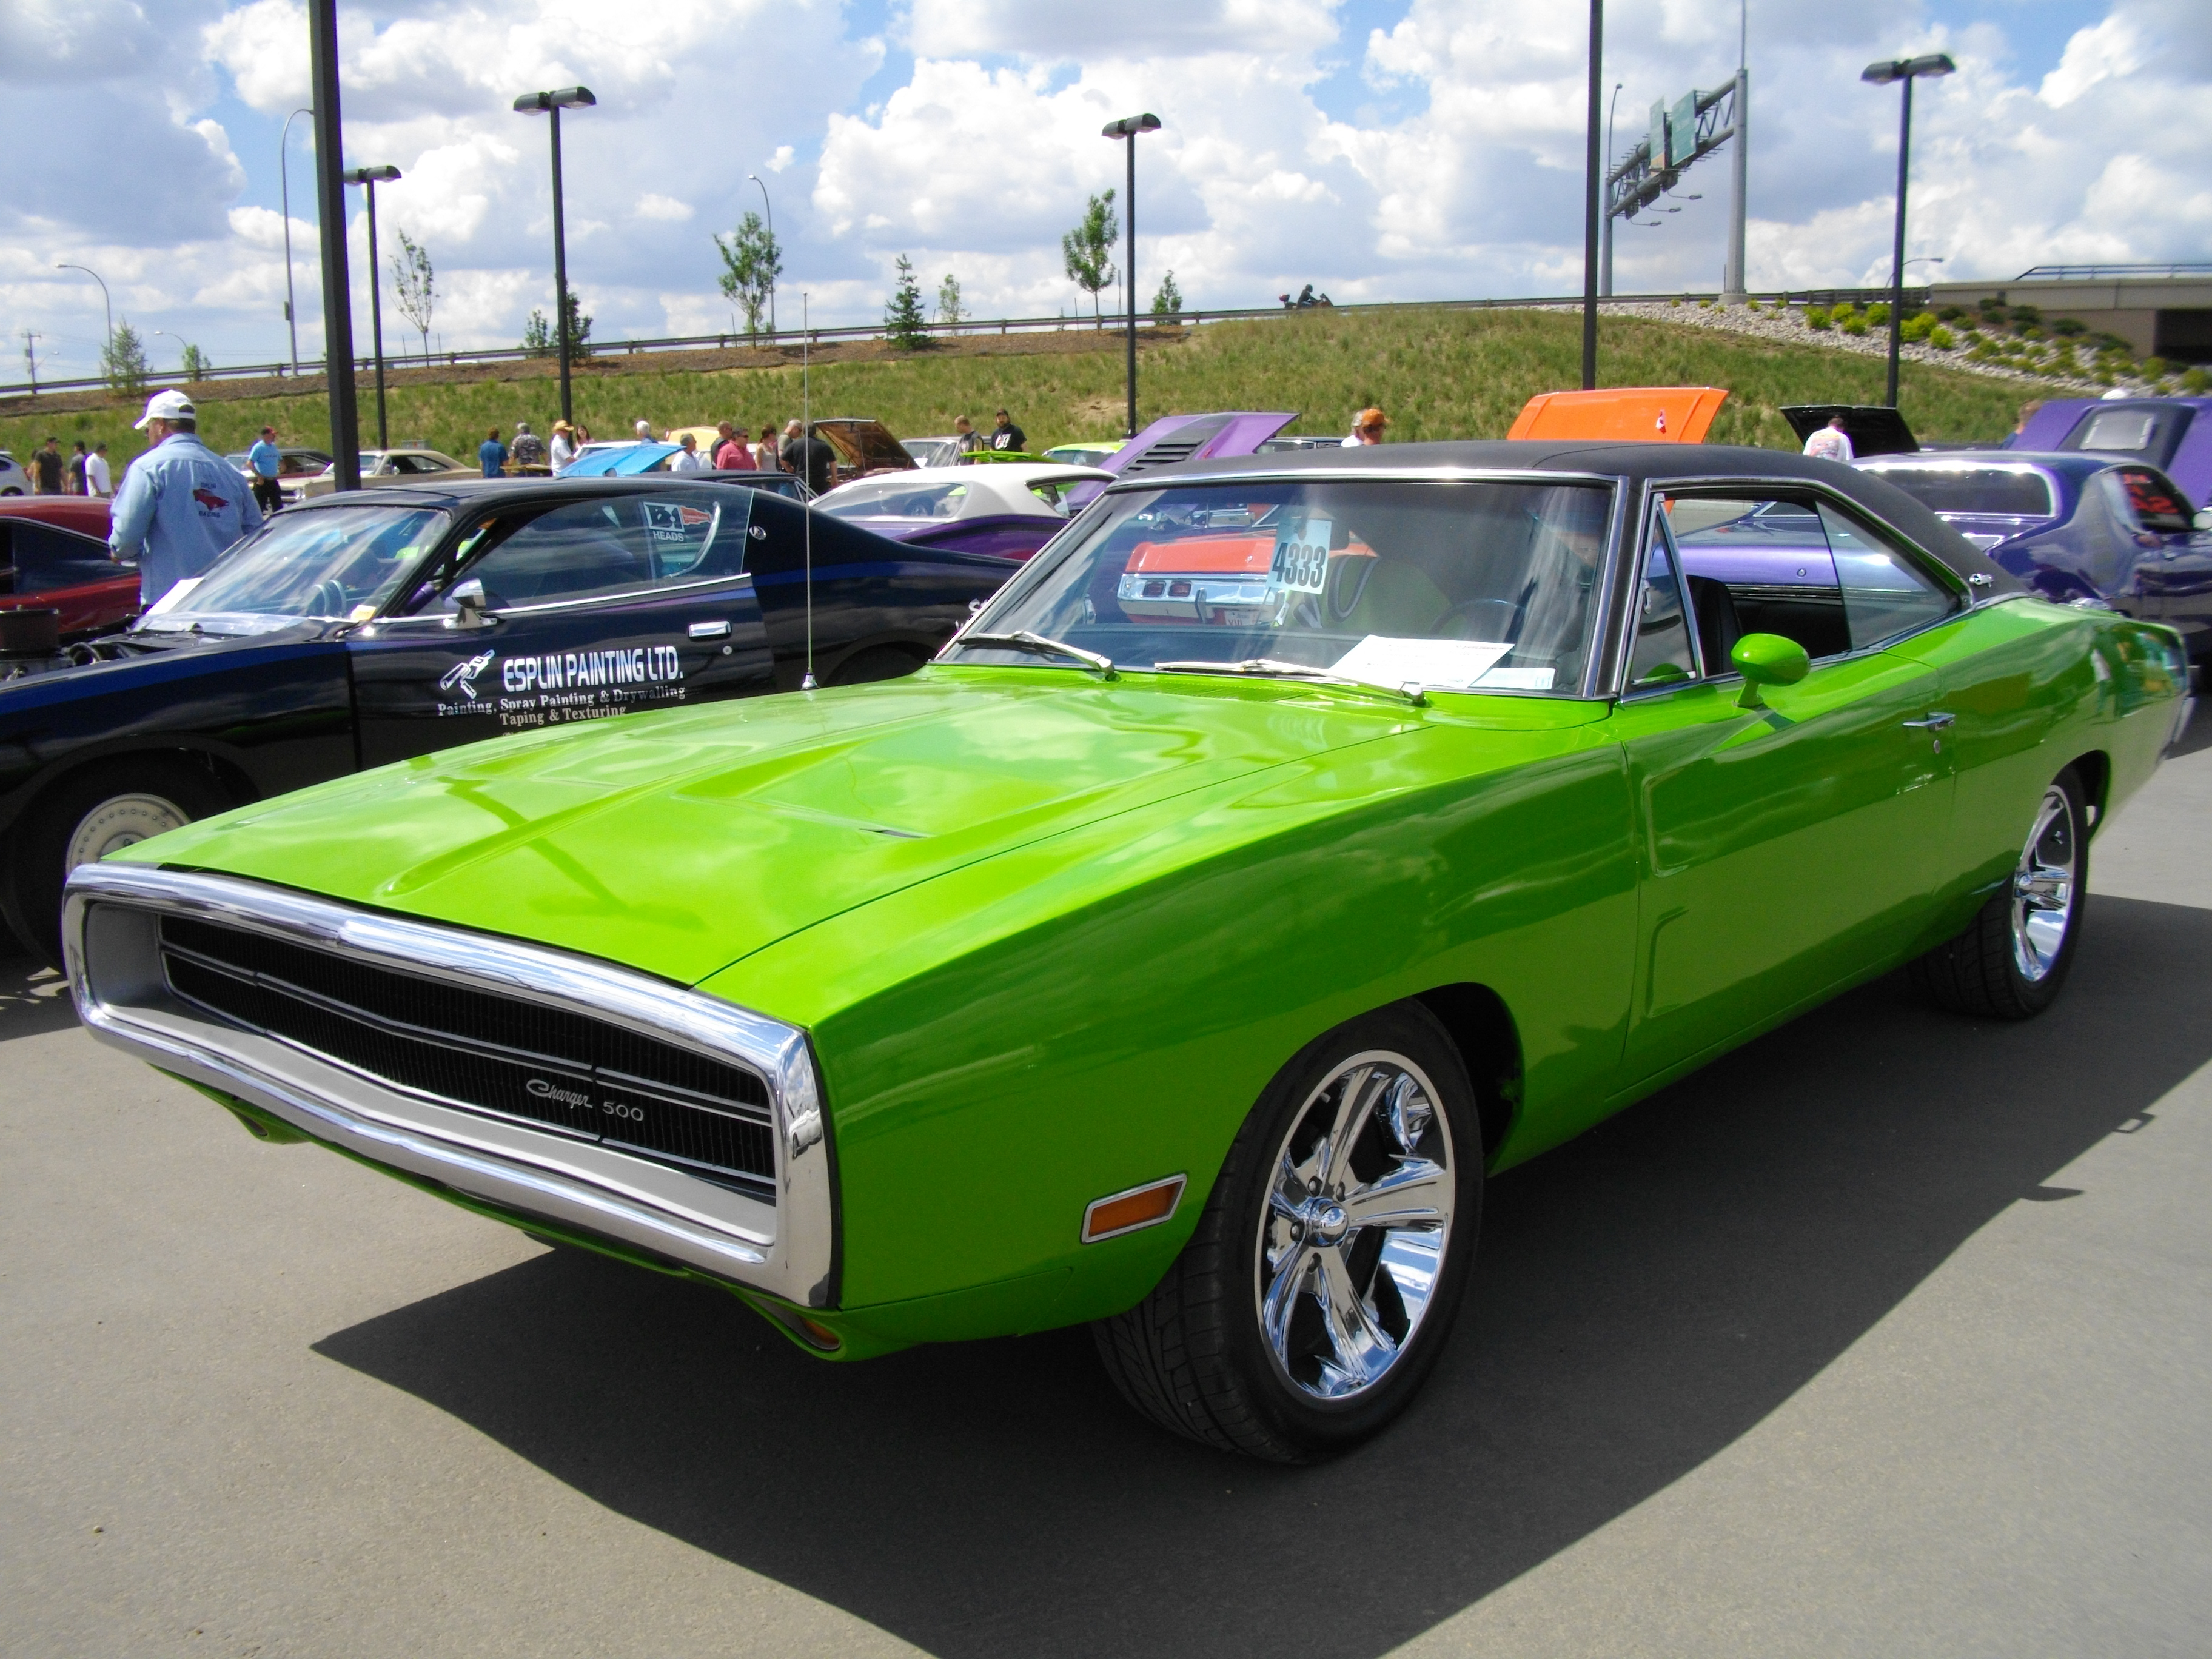 Charger Car For Sale In Pakistan